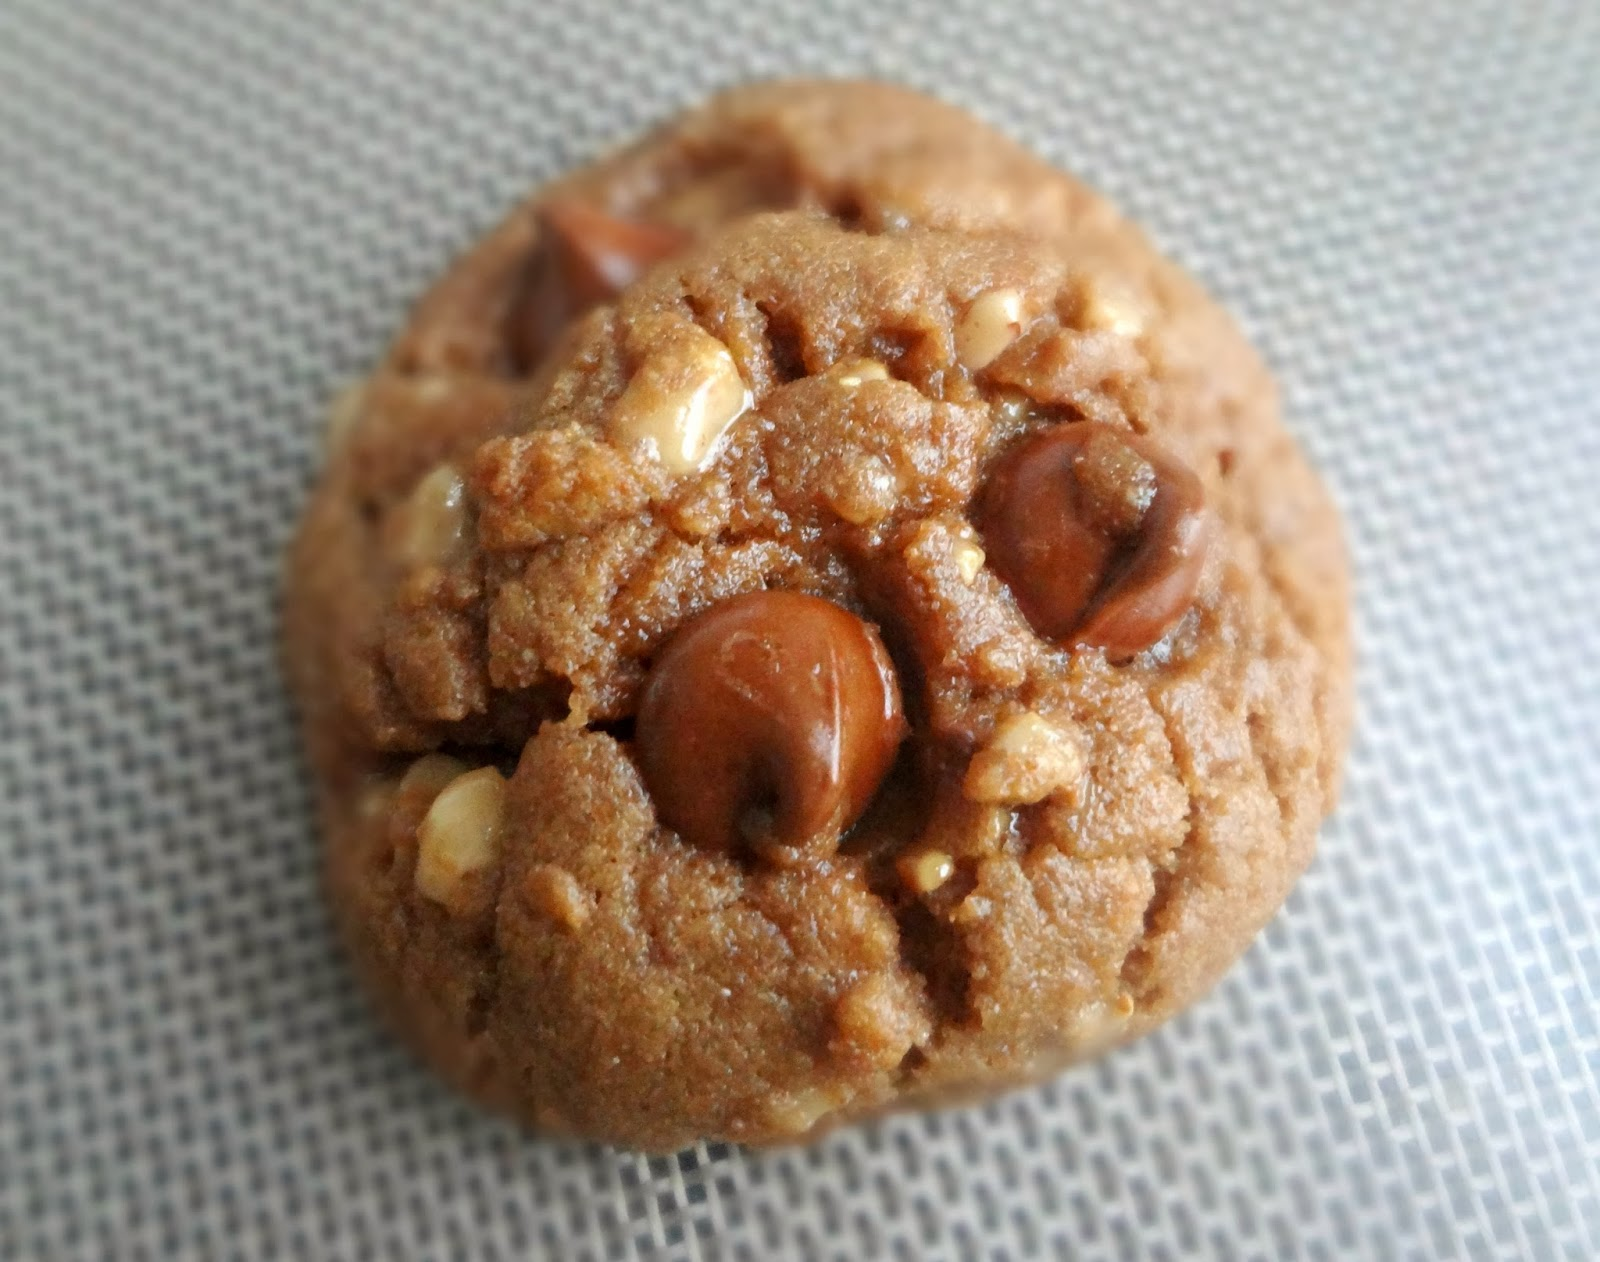 Toffee & Milk Chocolate Peanut Butter Cookies (Gluten Free)